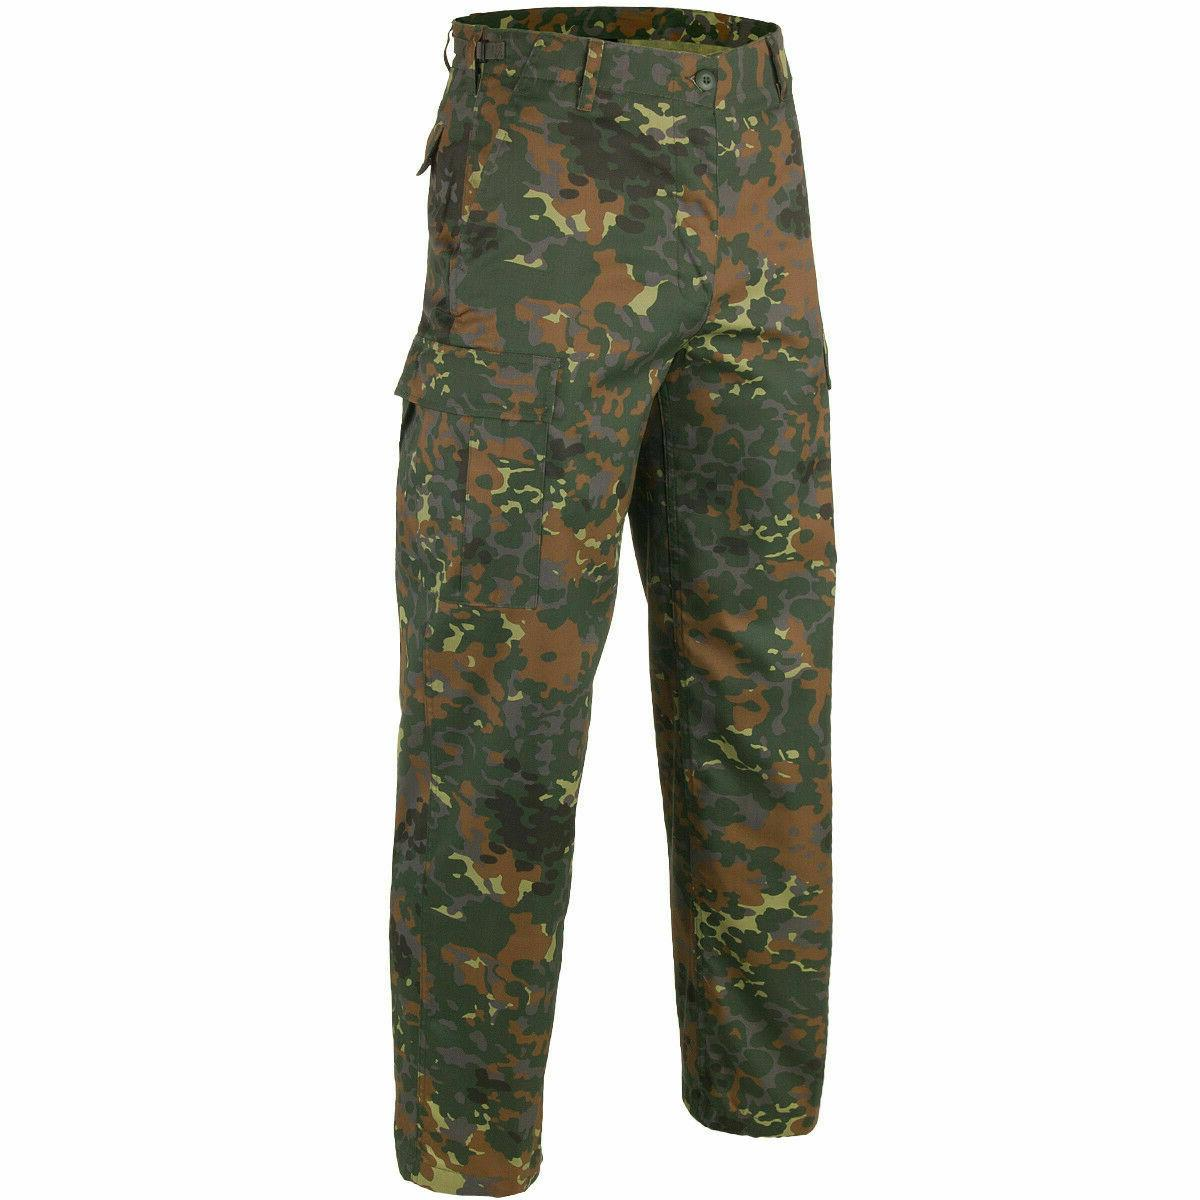 GERMAN CAMOUFLAGE MILITARY STYLE BDU 6